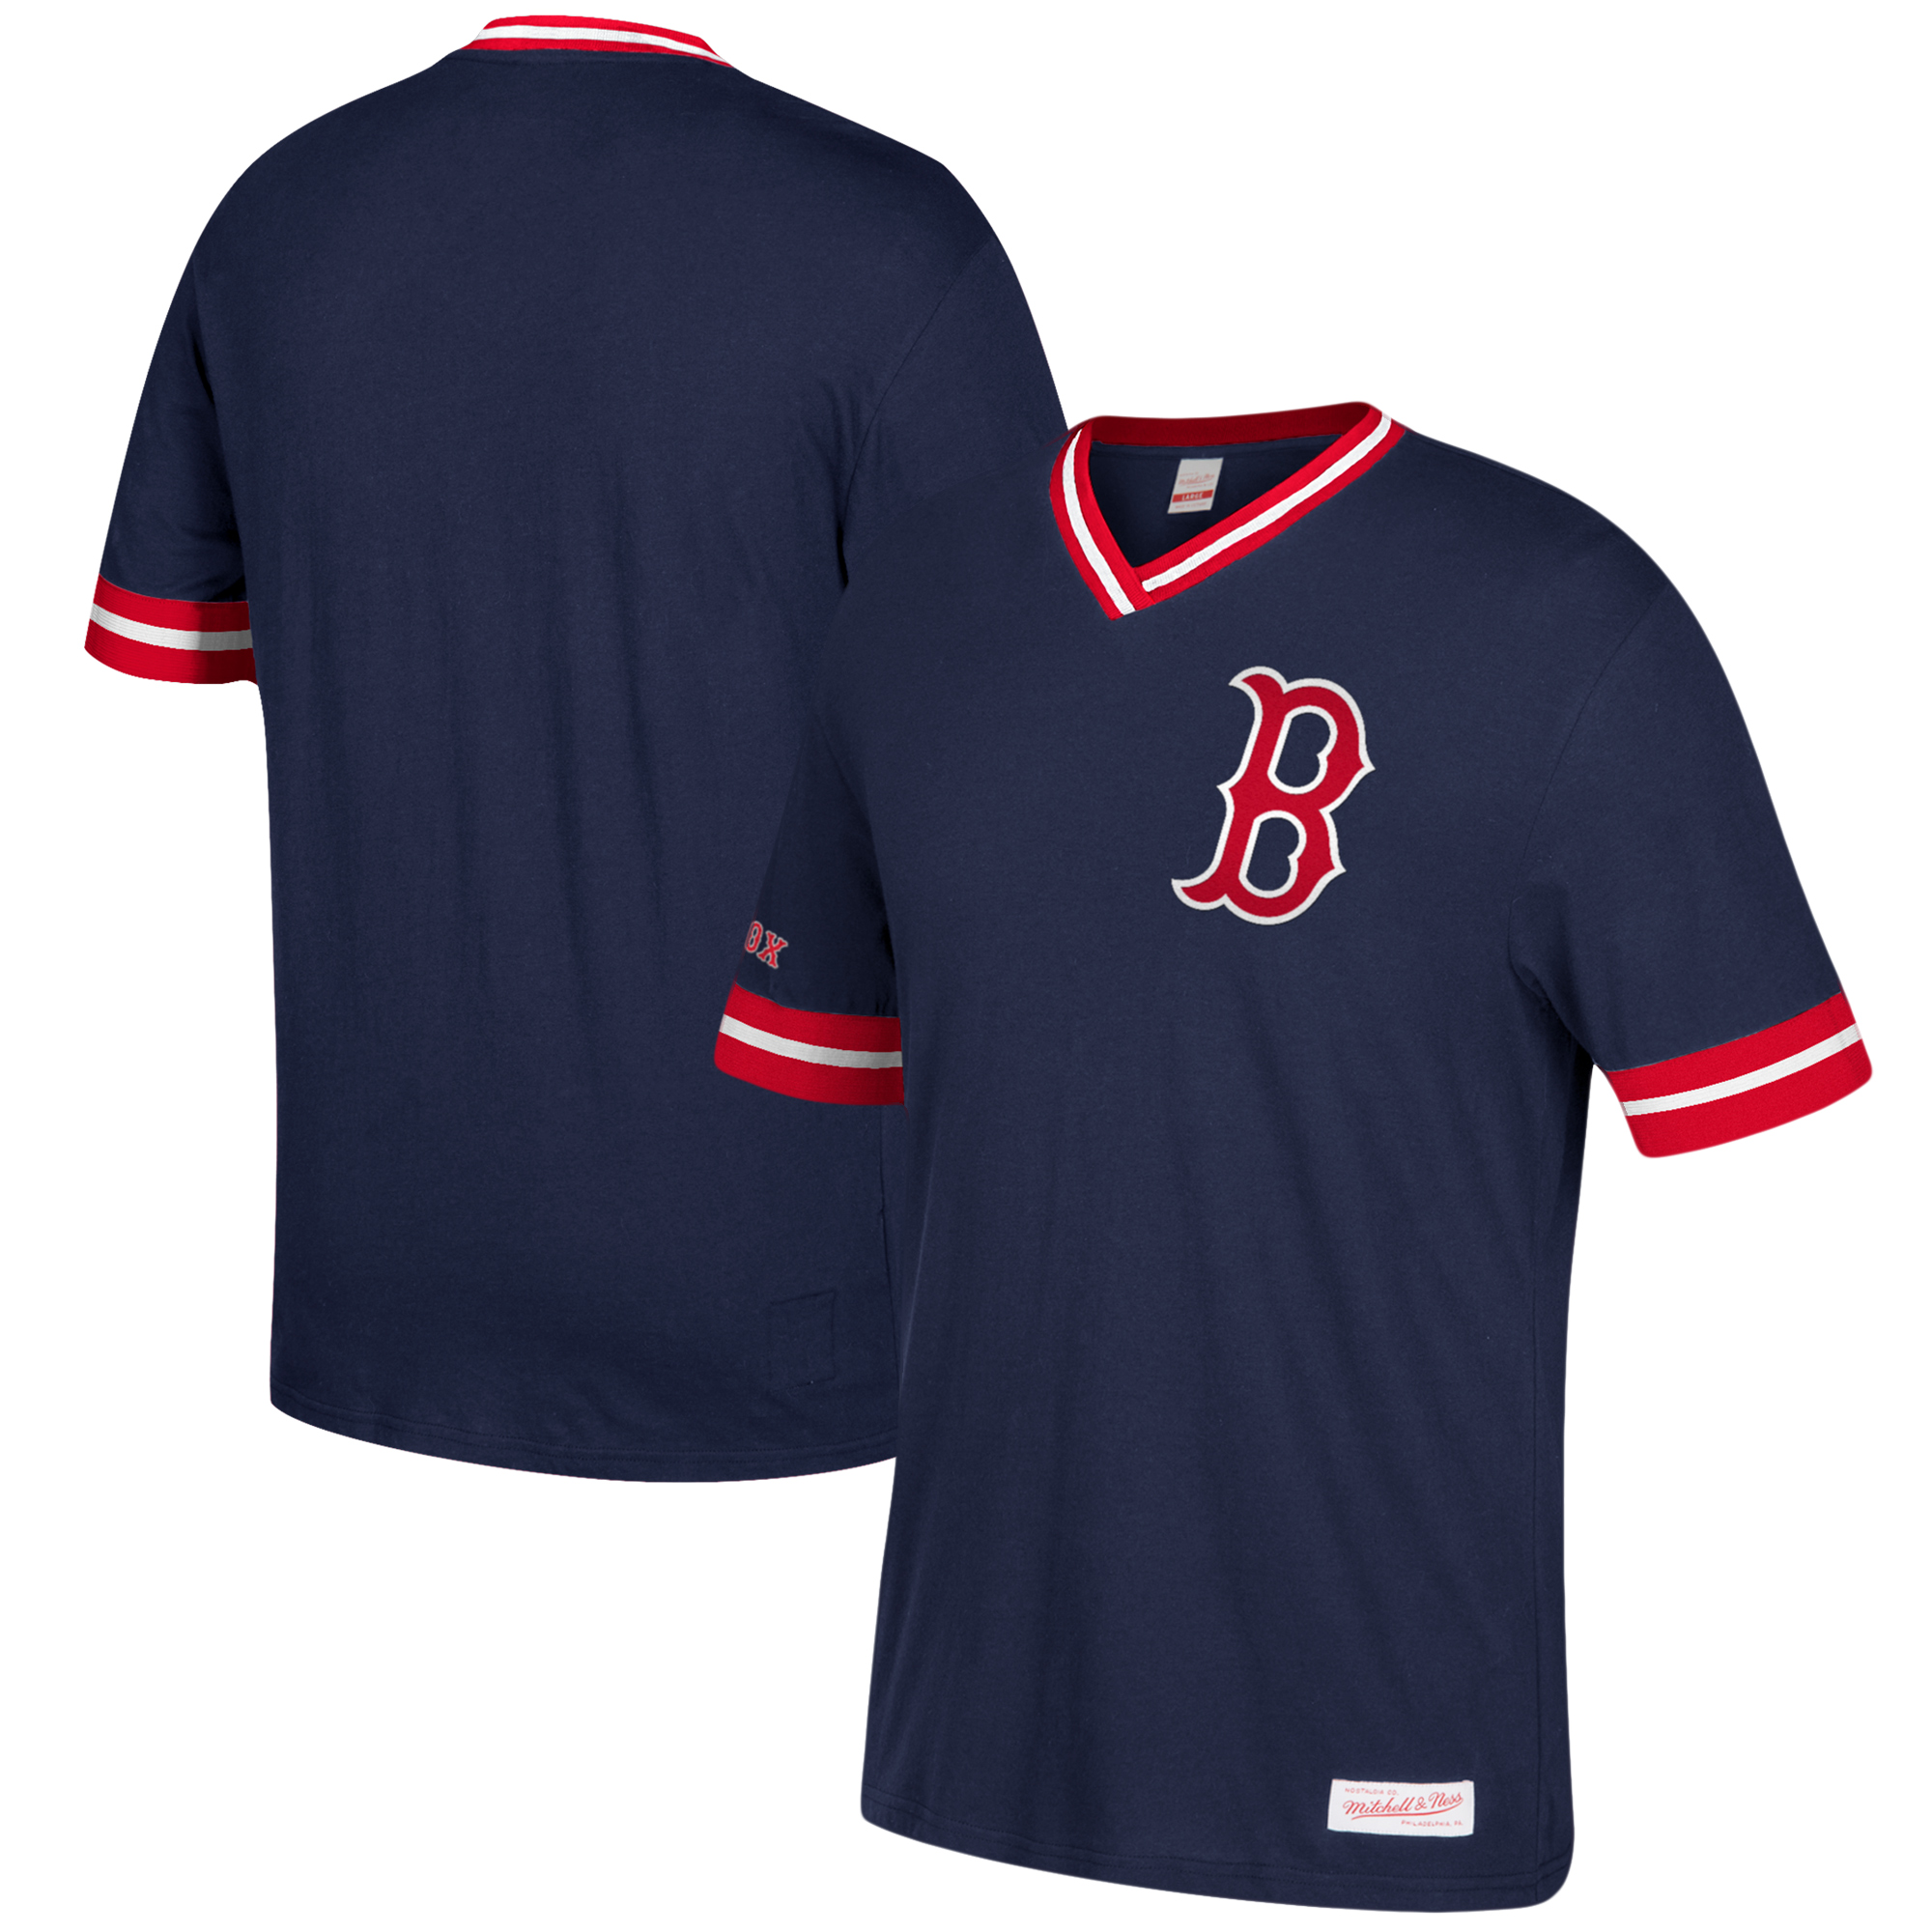 Mitchell and Ness Boston Red Sox Overtime Win Vintage T-Shirt MLB Navy Tee Top